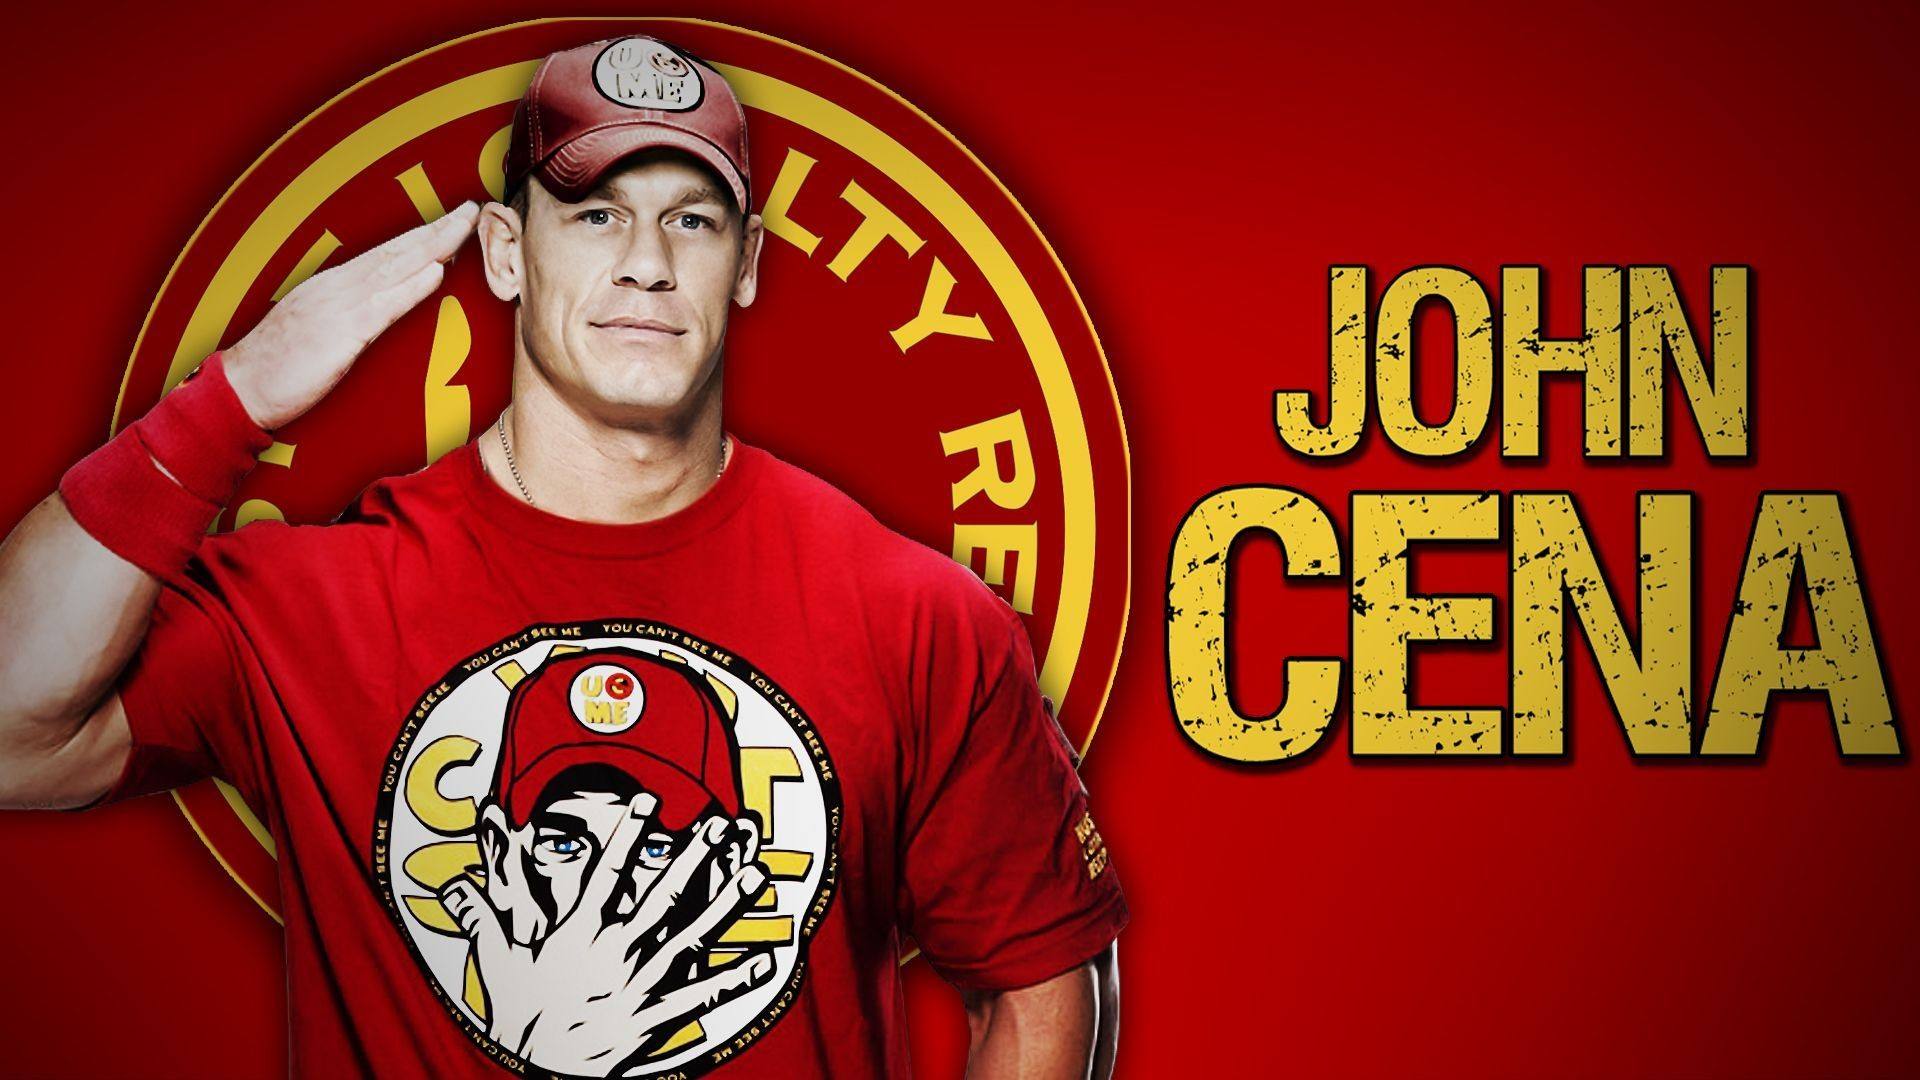 1920x1080 WWE John Cena Wallpapers 2015 HD - Wallpaper Cave